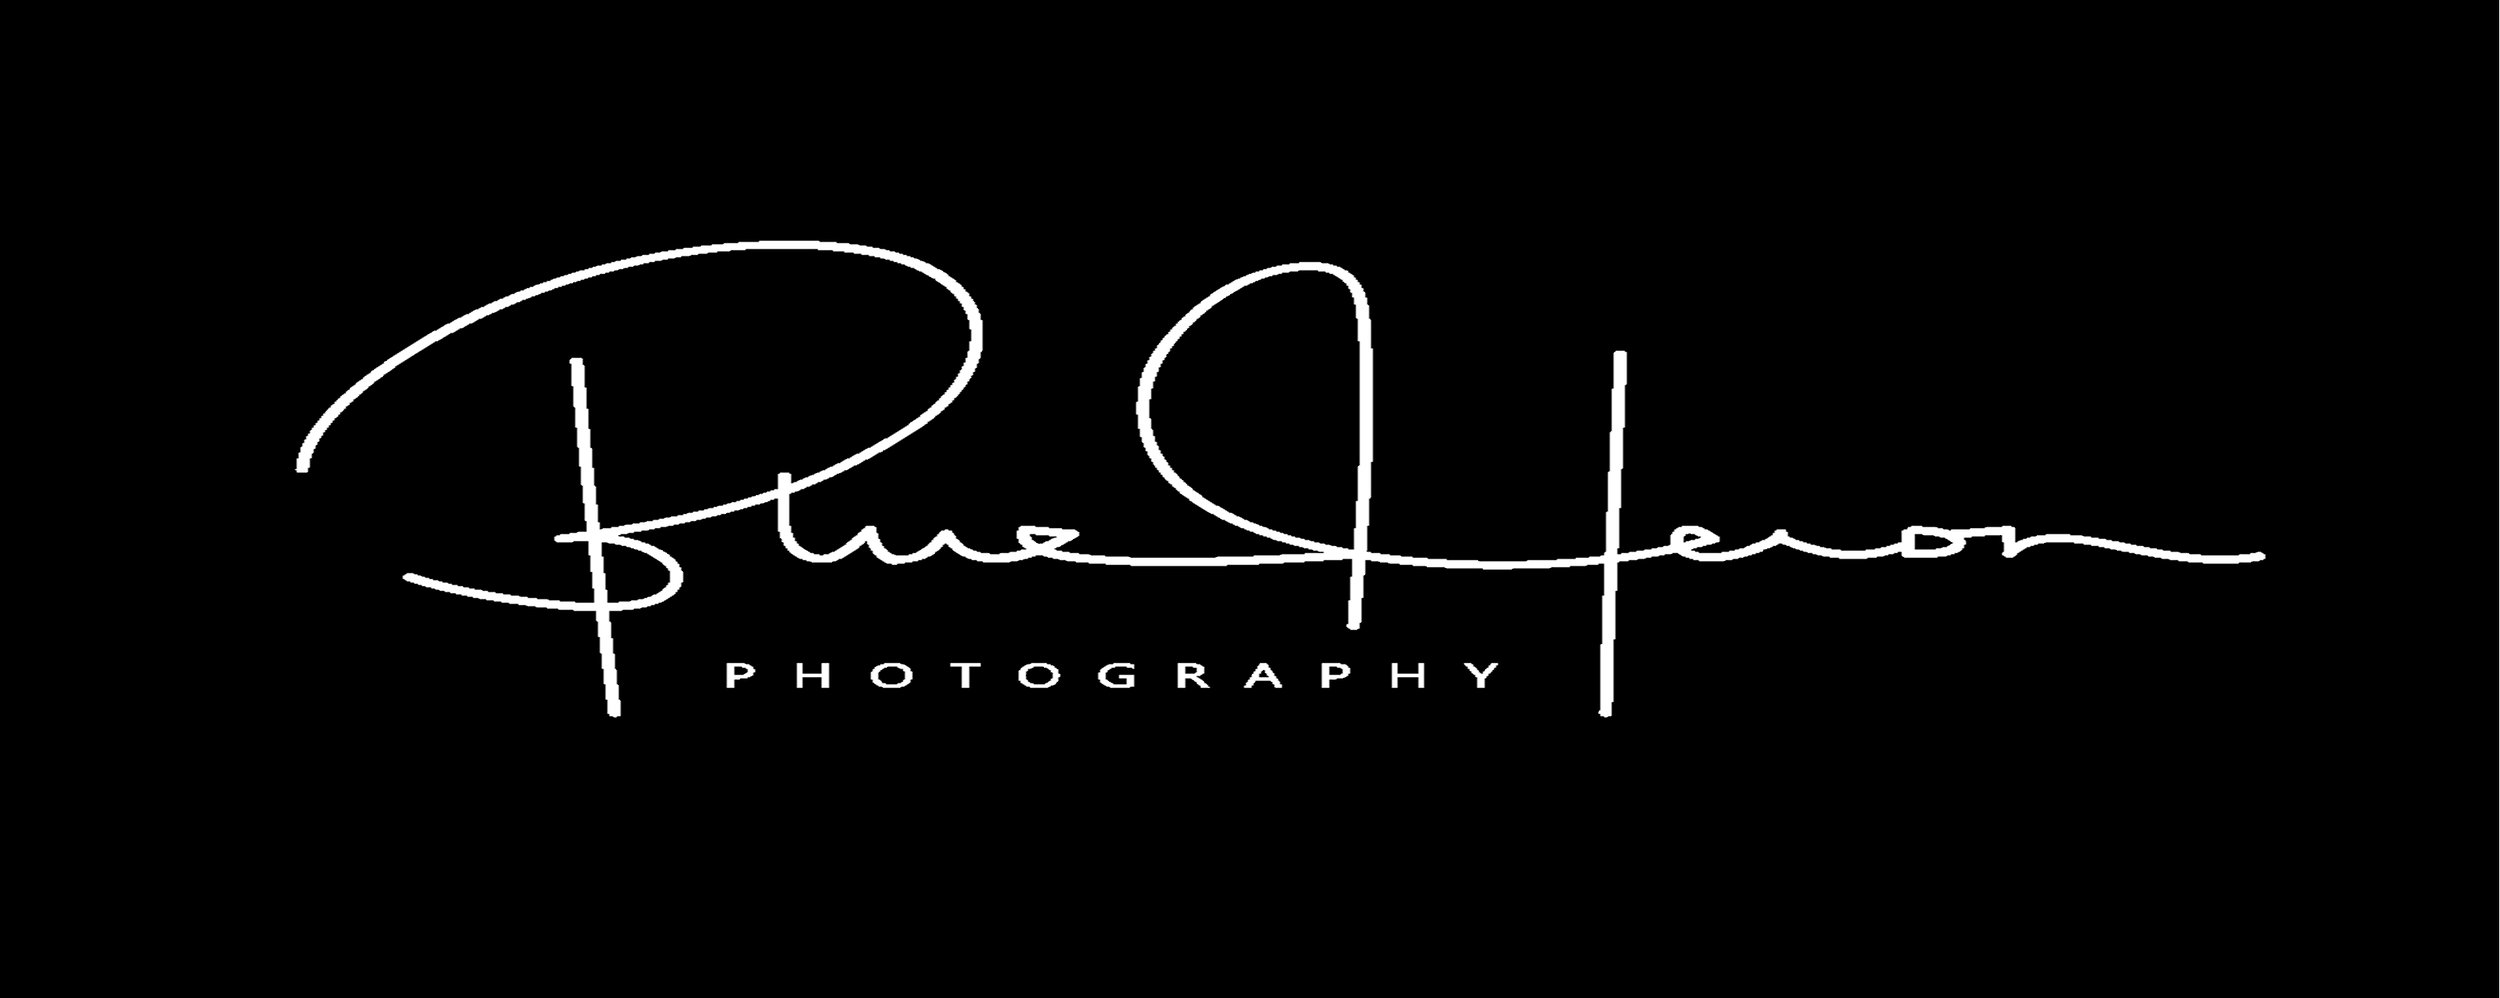 """I have launched my own logo/brand for my photos called """"Blue Heron Photography"""" so you will see this on most of my photos on line now"""